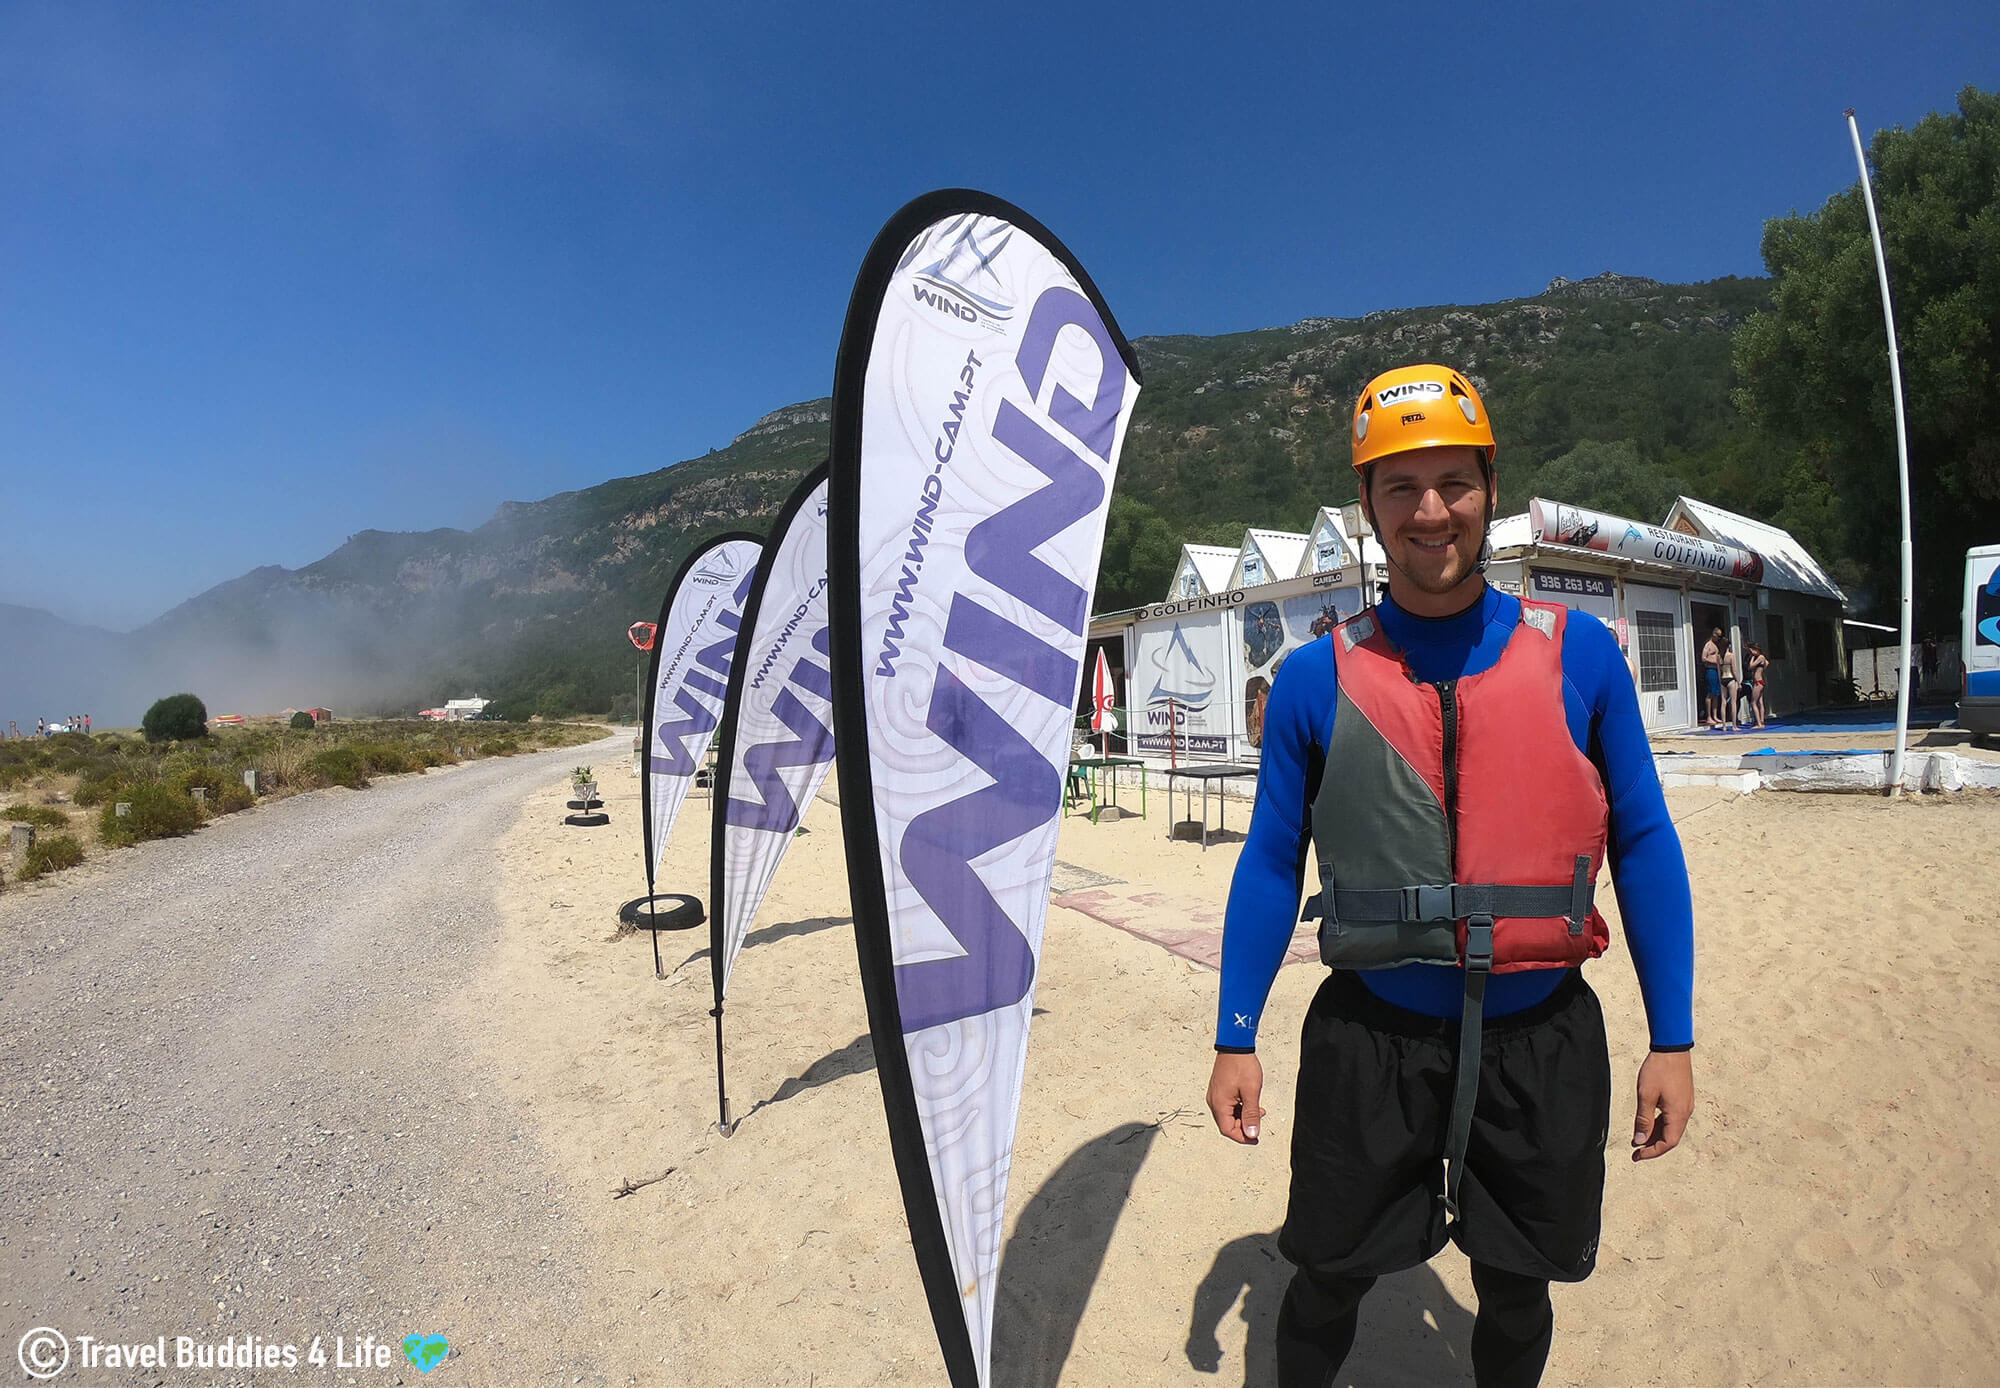 Joey suited up in his Coasteering Gear and Ready for Action with WIND in Portugal